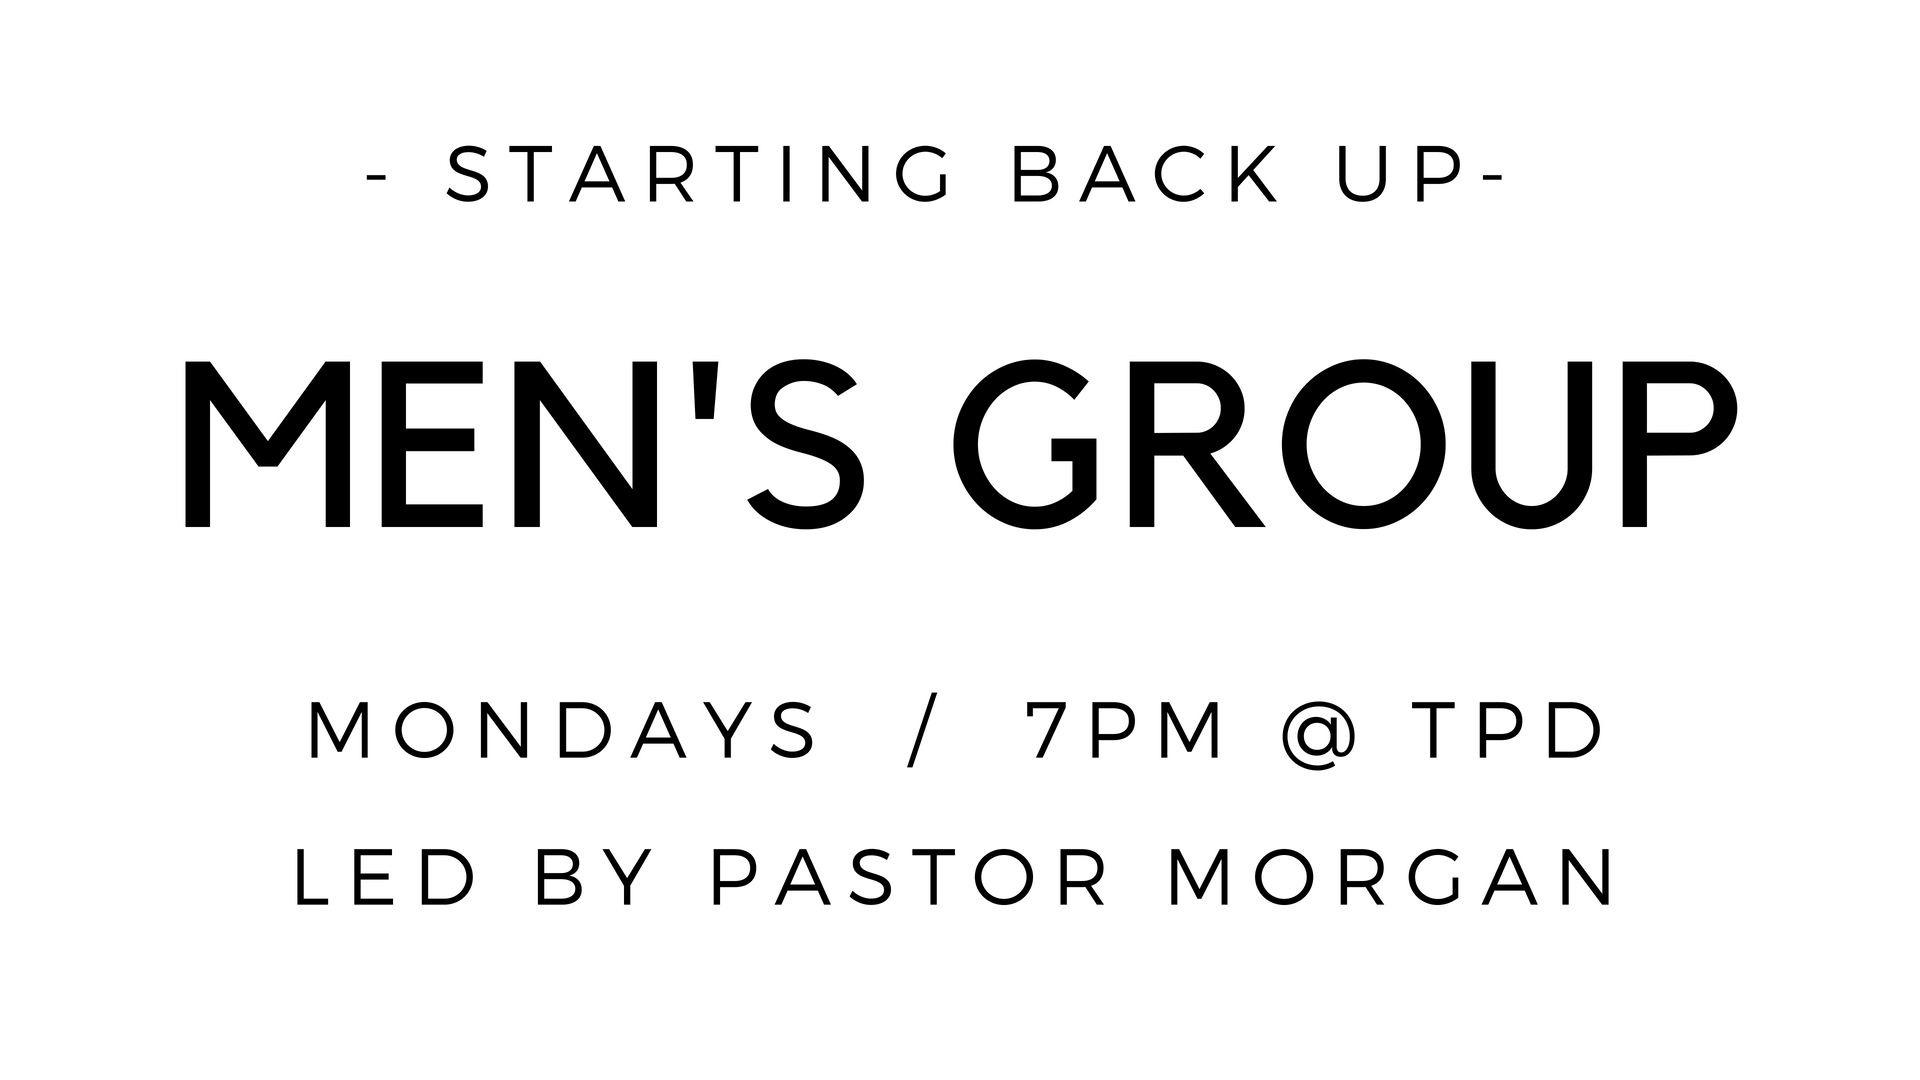 This Monday, Aug. 20 at 7pm, our men's group will resume meeting here at the church. All men are welcome.